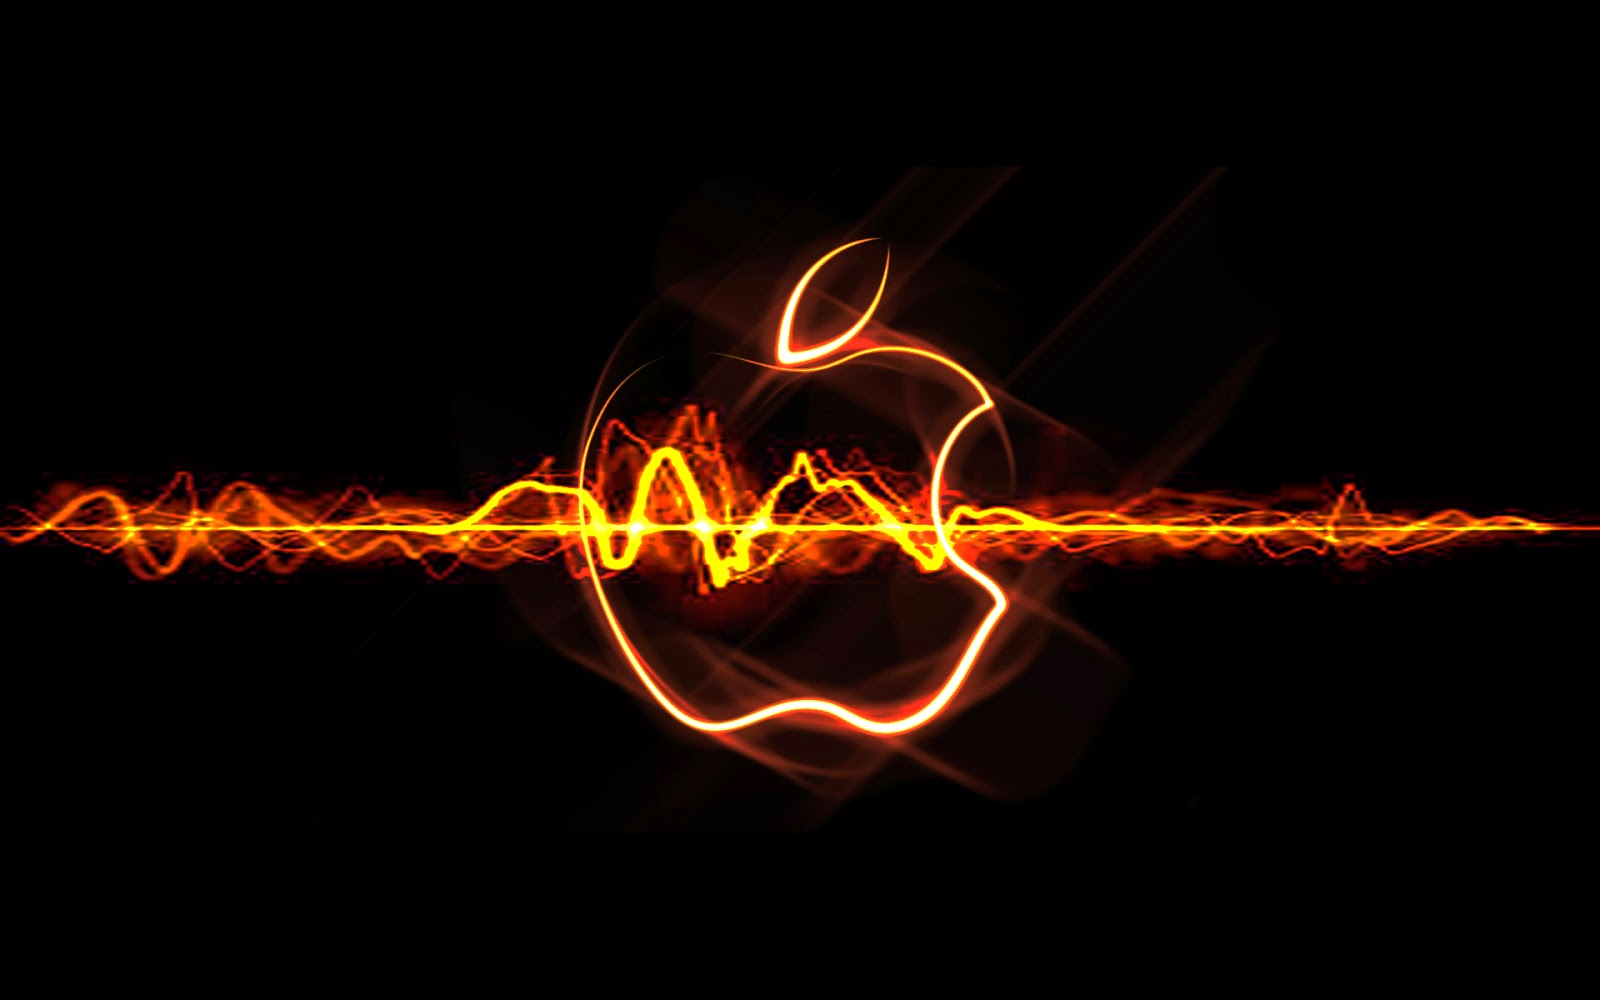 Black Apple Wallpaper Hd